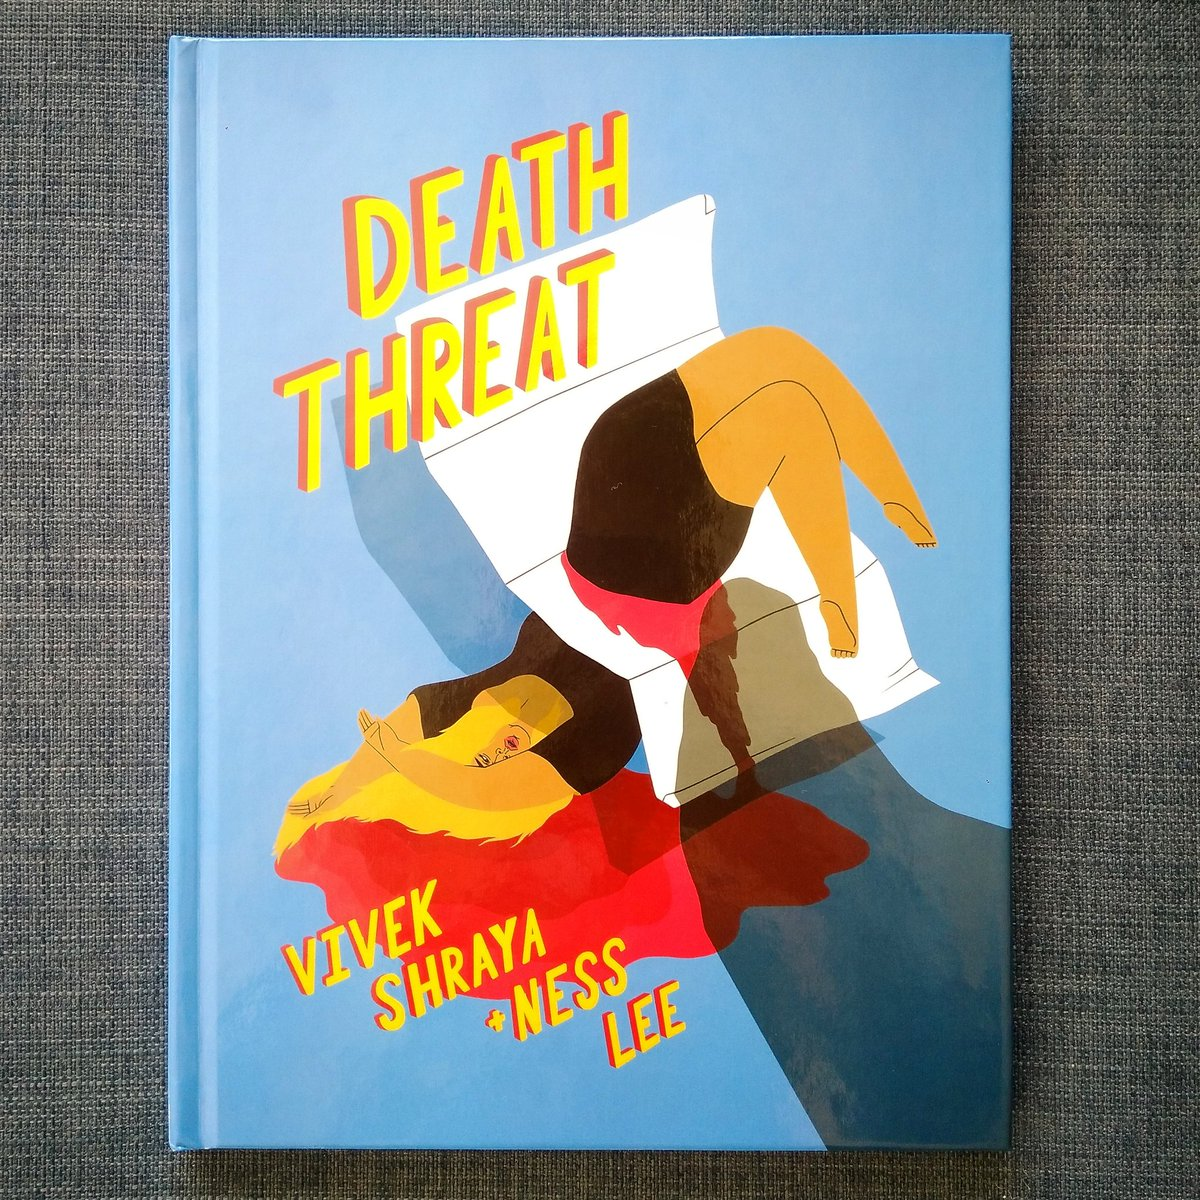 Omg everyone. @vivekshraya + @nessnesslee's #deaththreatcomic is the most stunning, haunting book you will read this year. Read it twice this morning and am completely mesmerized. Order now!! https://arsenalpulp.com/Books/D/Death-Threat …